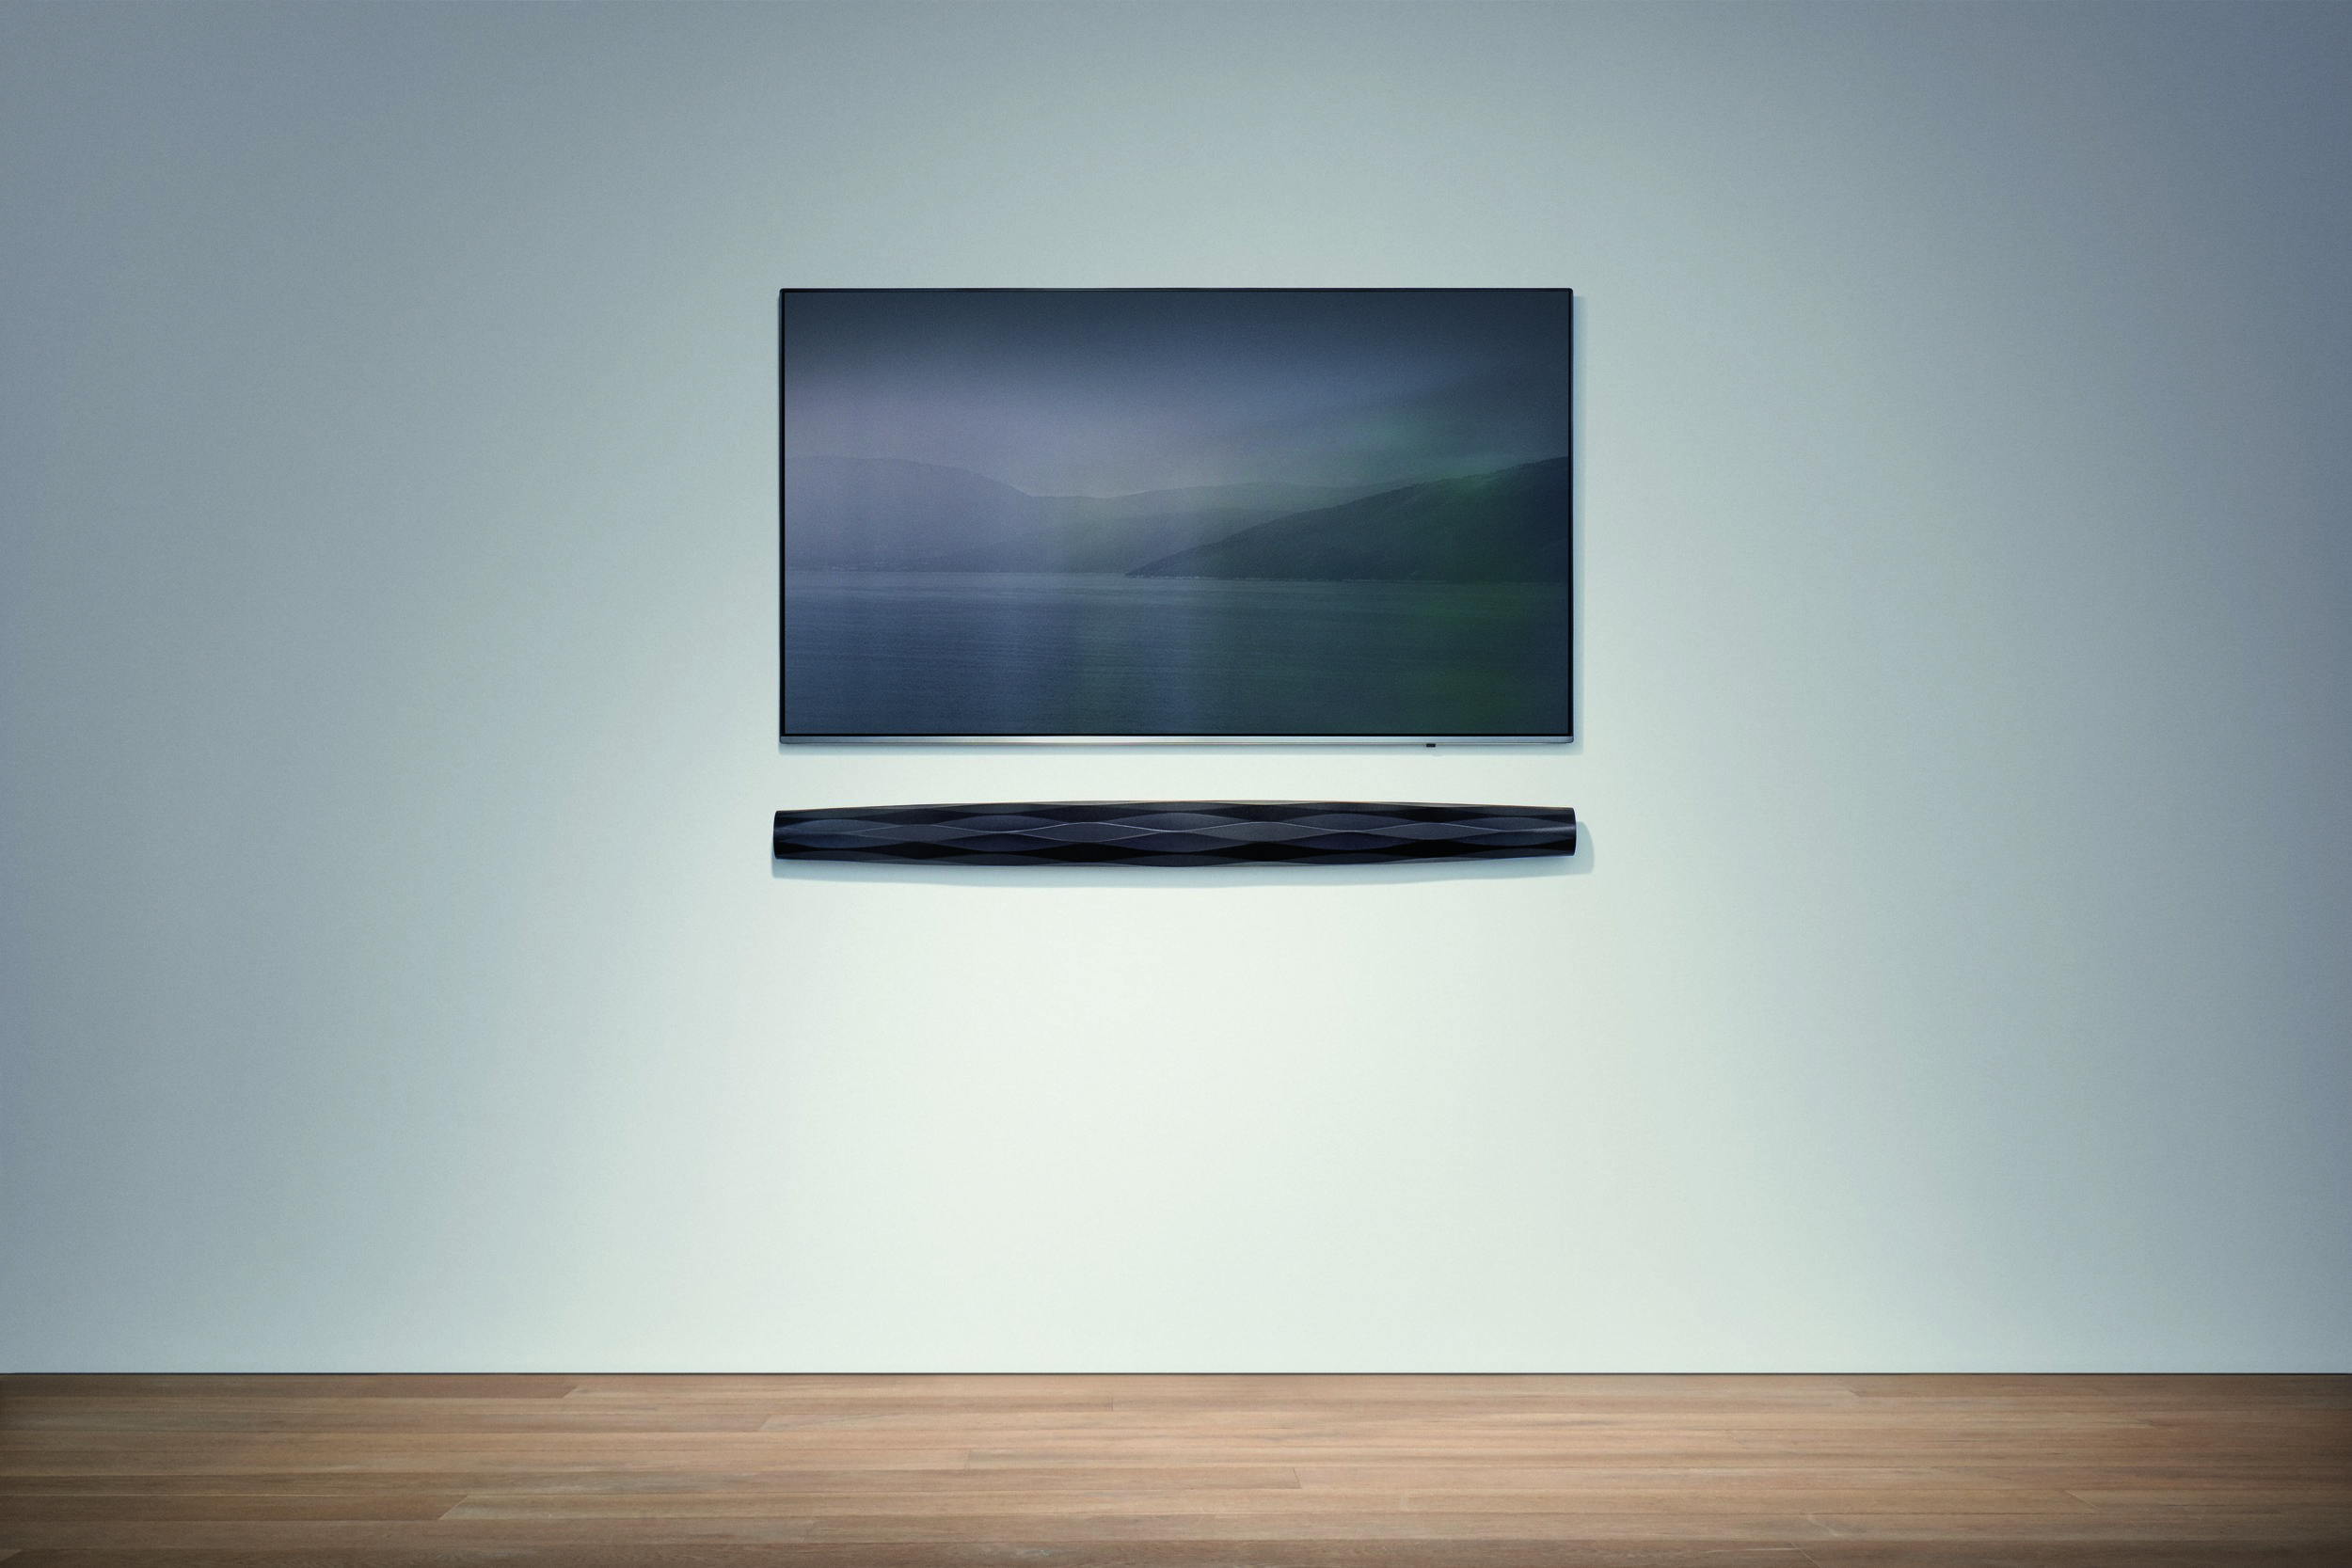 Formation Bar; a soundbar that gives a wide and inclusive soundstage for music and movies.